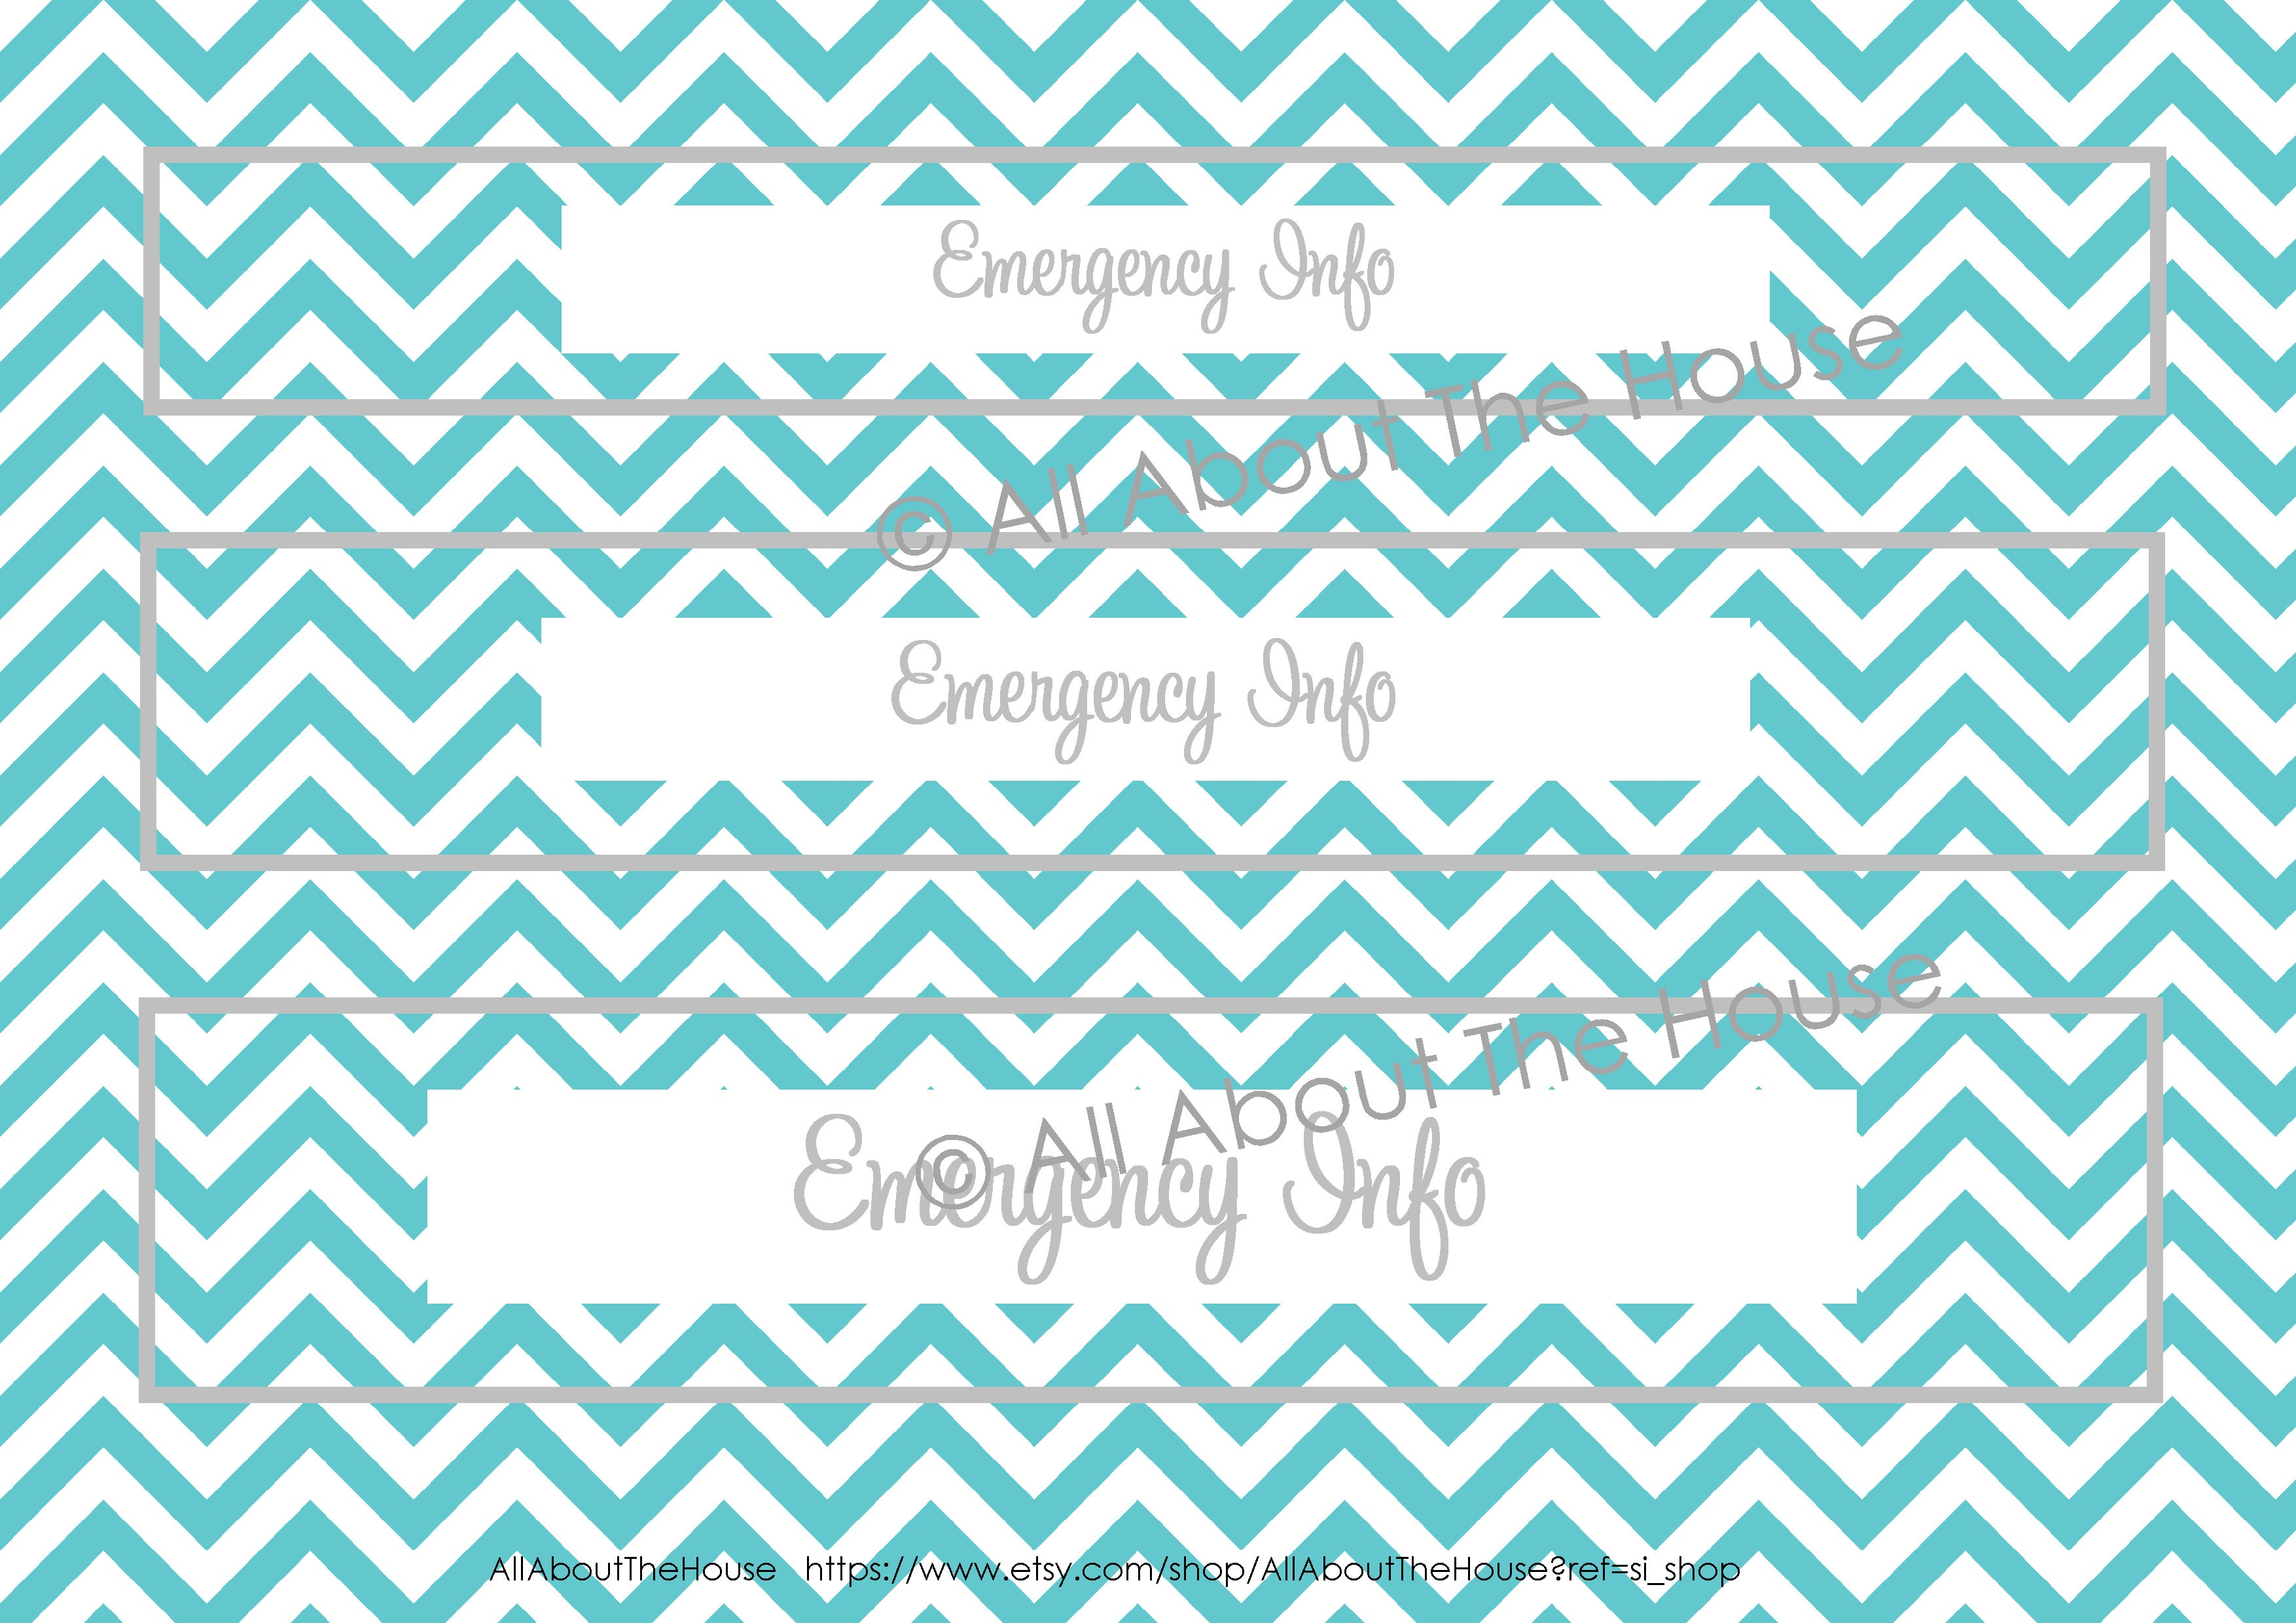 Printable Label | Allaboutthehouse Printables - Free Printable Chevron Labels